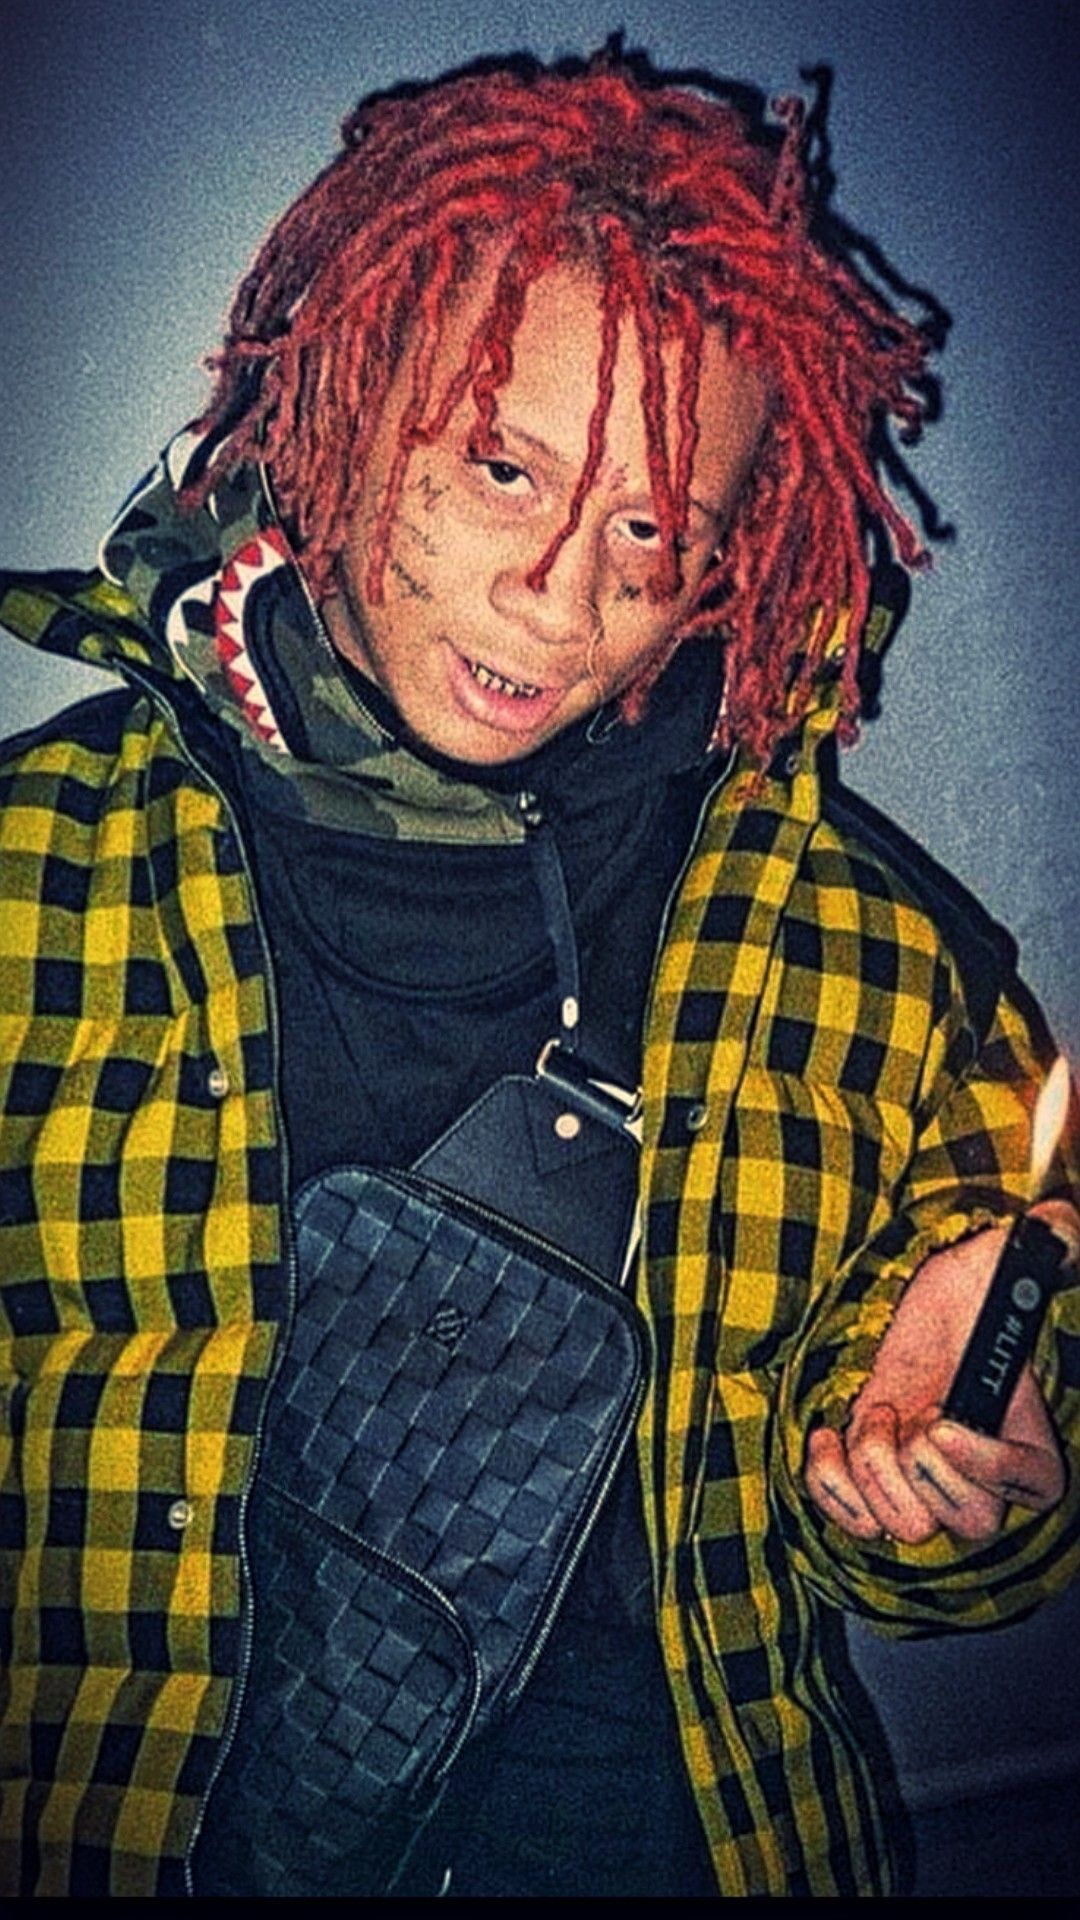 Lil Skies Pictures » Hupages » Download Iphone Wallpapers